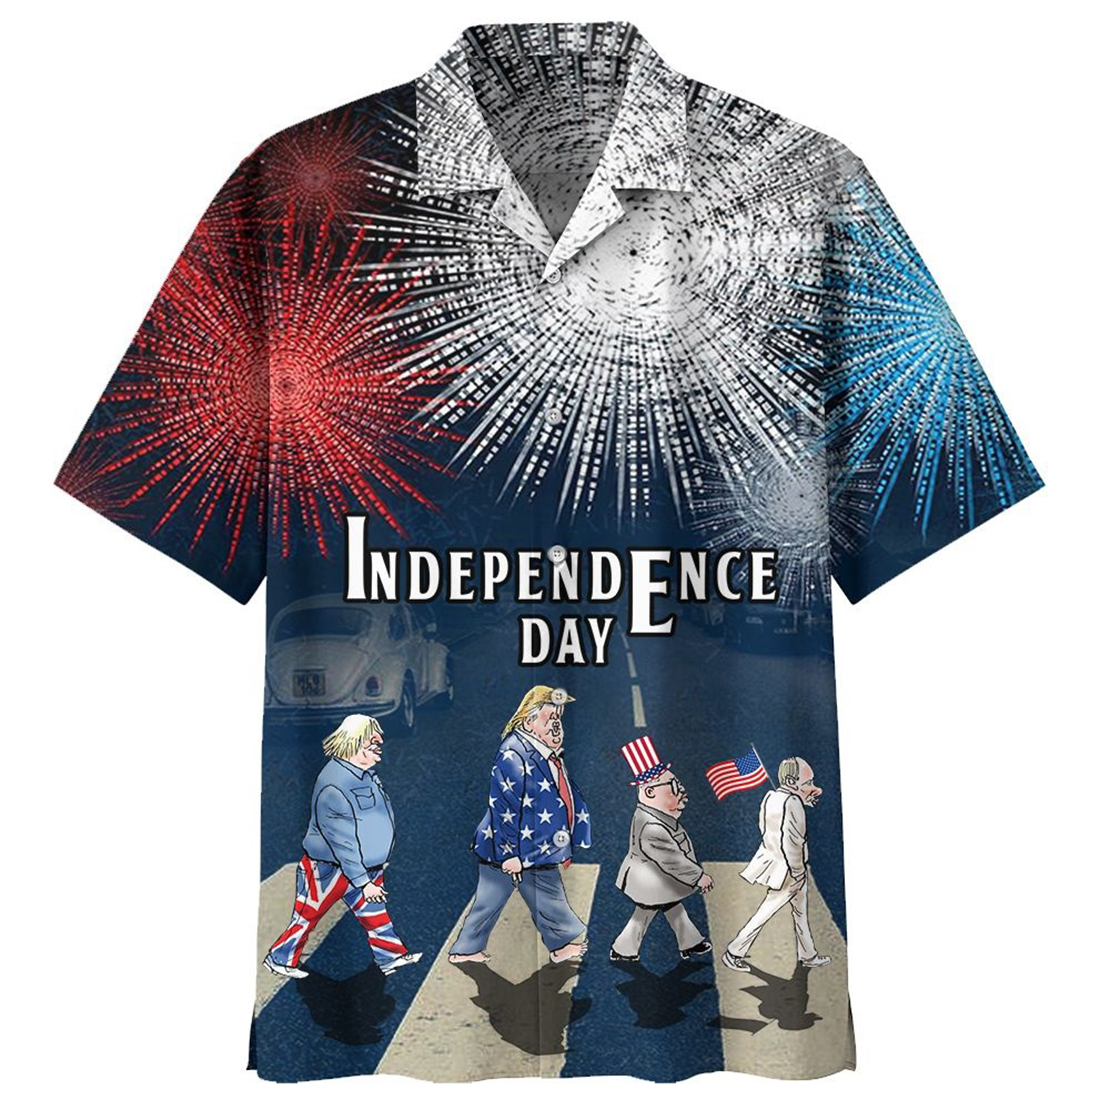 Independence day Abbey Road hawaiian shirt - Picture 1